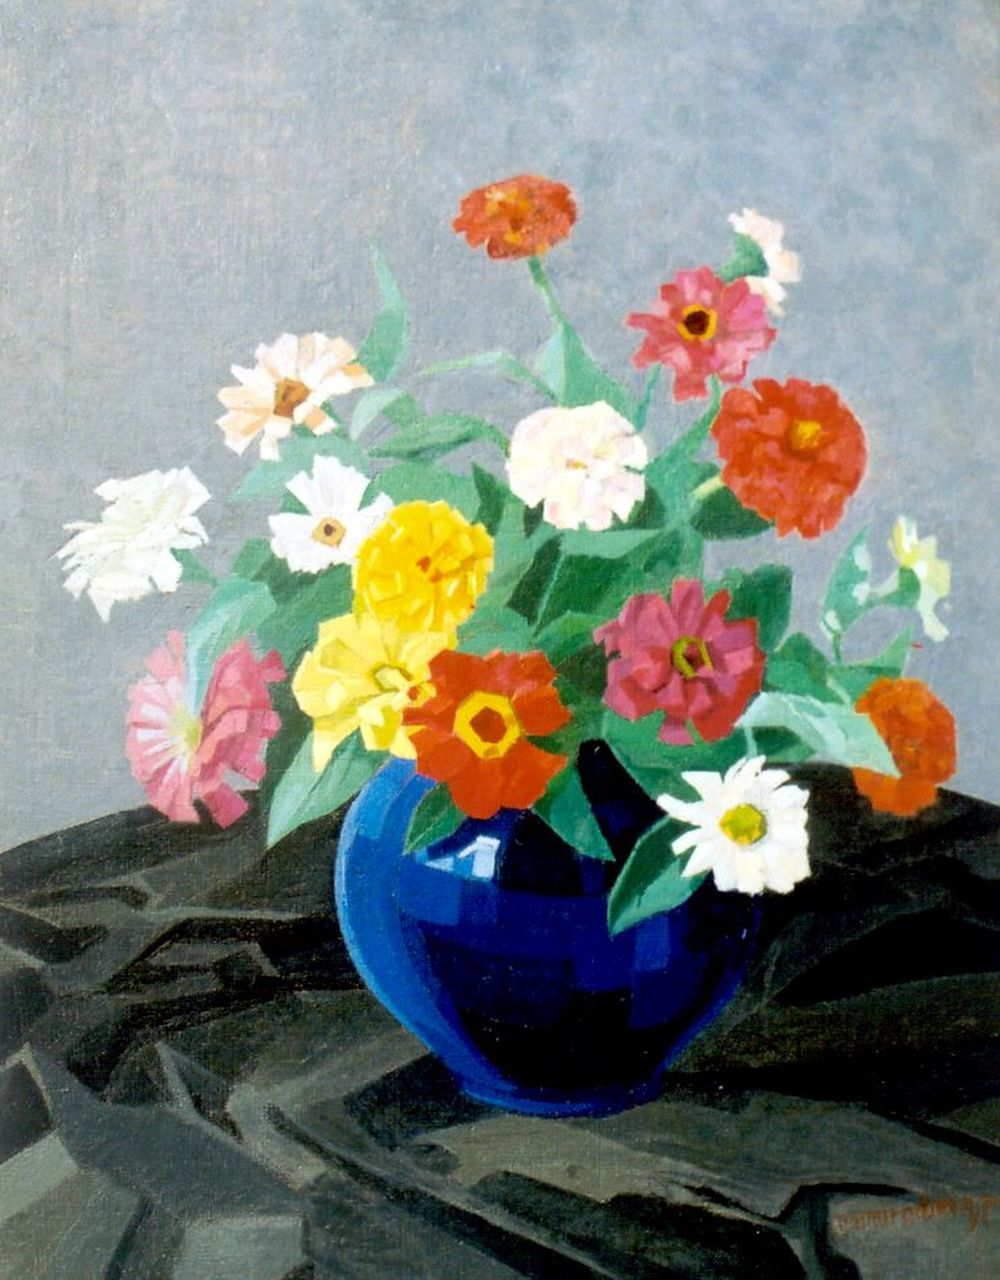 Smorenberg D.  | Dirk Smorenberg, Zinnias in a blue pot, oil on canvas 50.1 x 40.2 cm, signed l.r. and dated '24